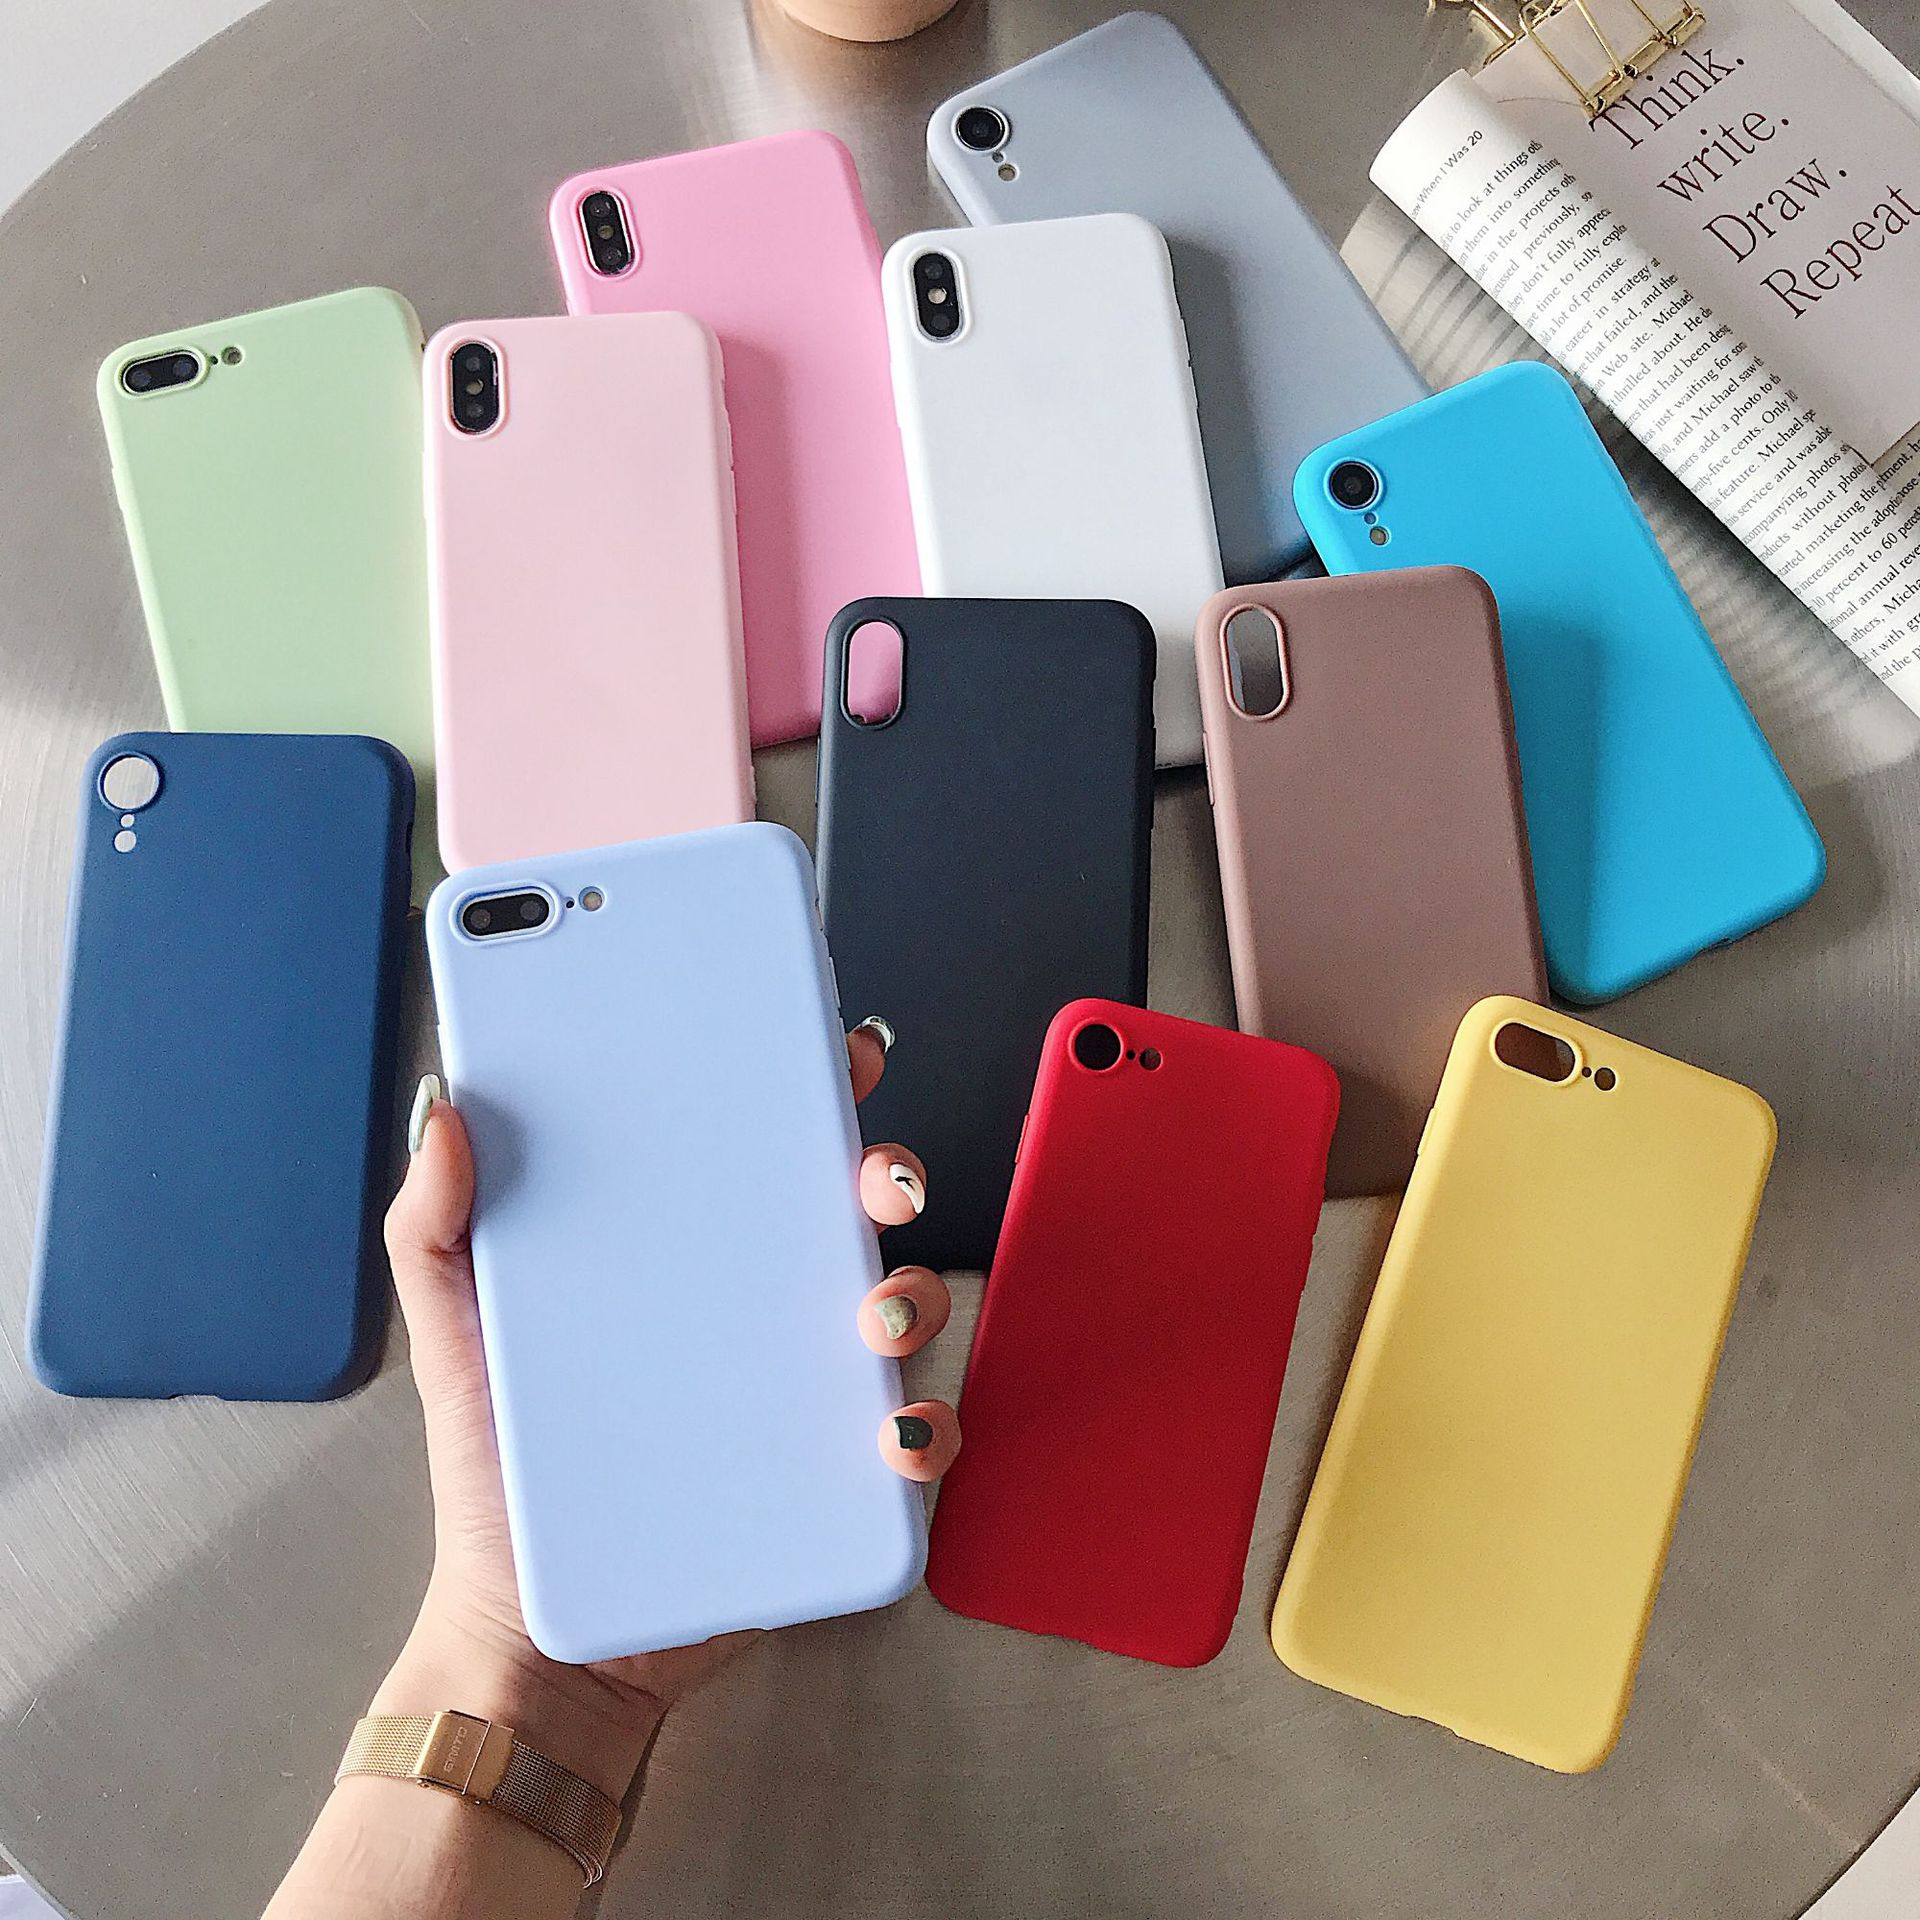 TPU Case Mate Silicone Cover P8-Lite Nova 3e Huawei P10 Honor Candy-Color P20 Pro Plus